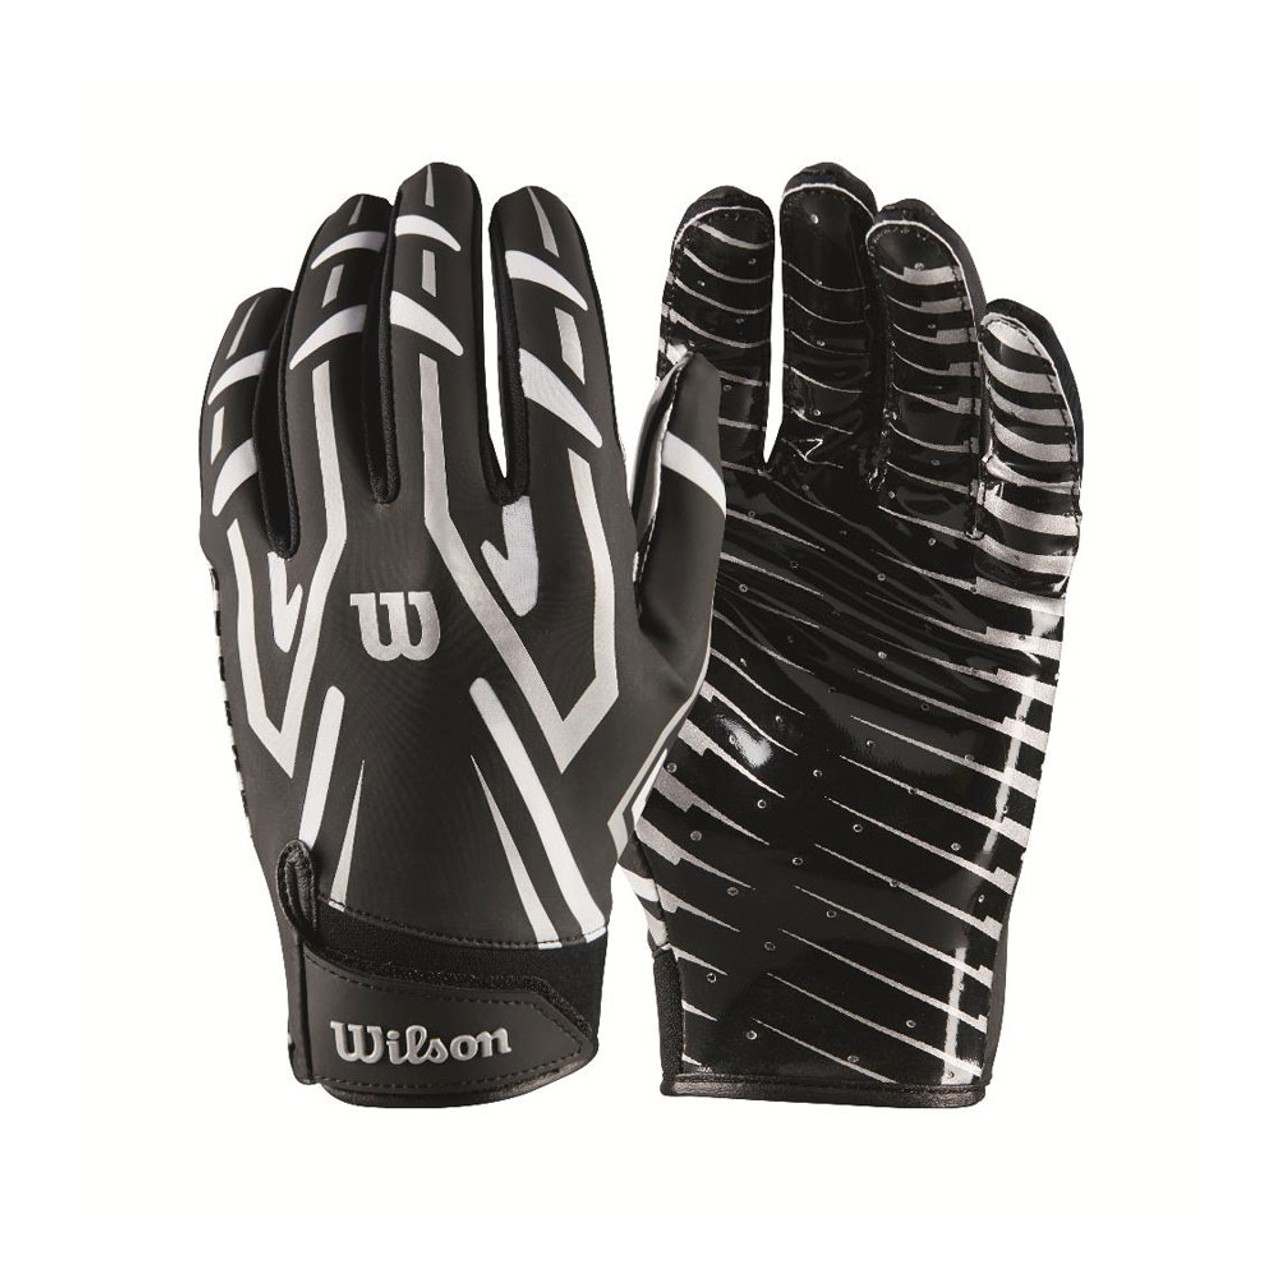 80ba38575d2 WILSON american football clutch receiver gloves-Large  black white